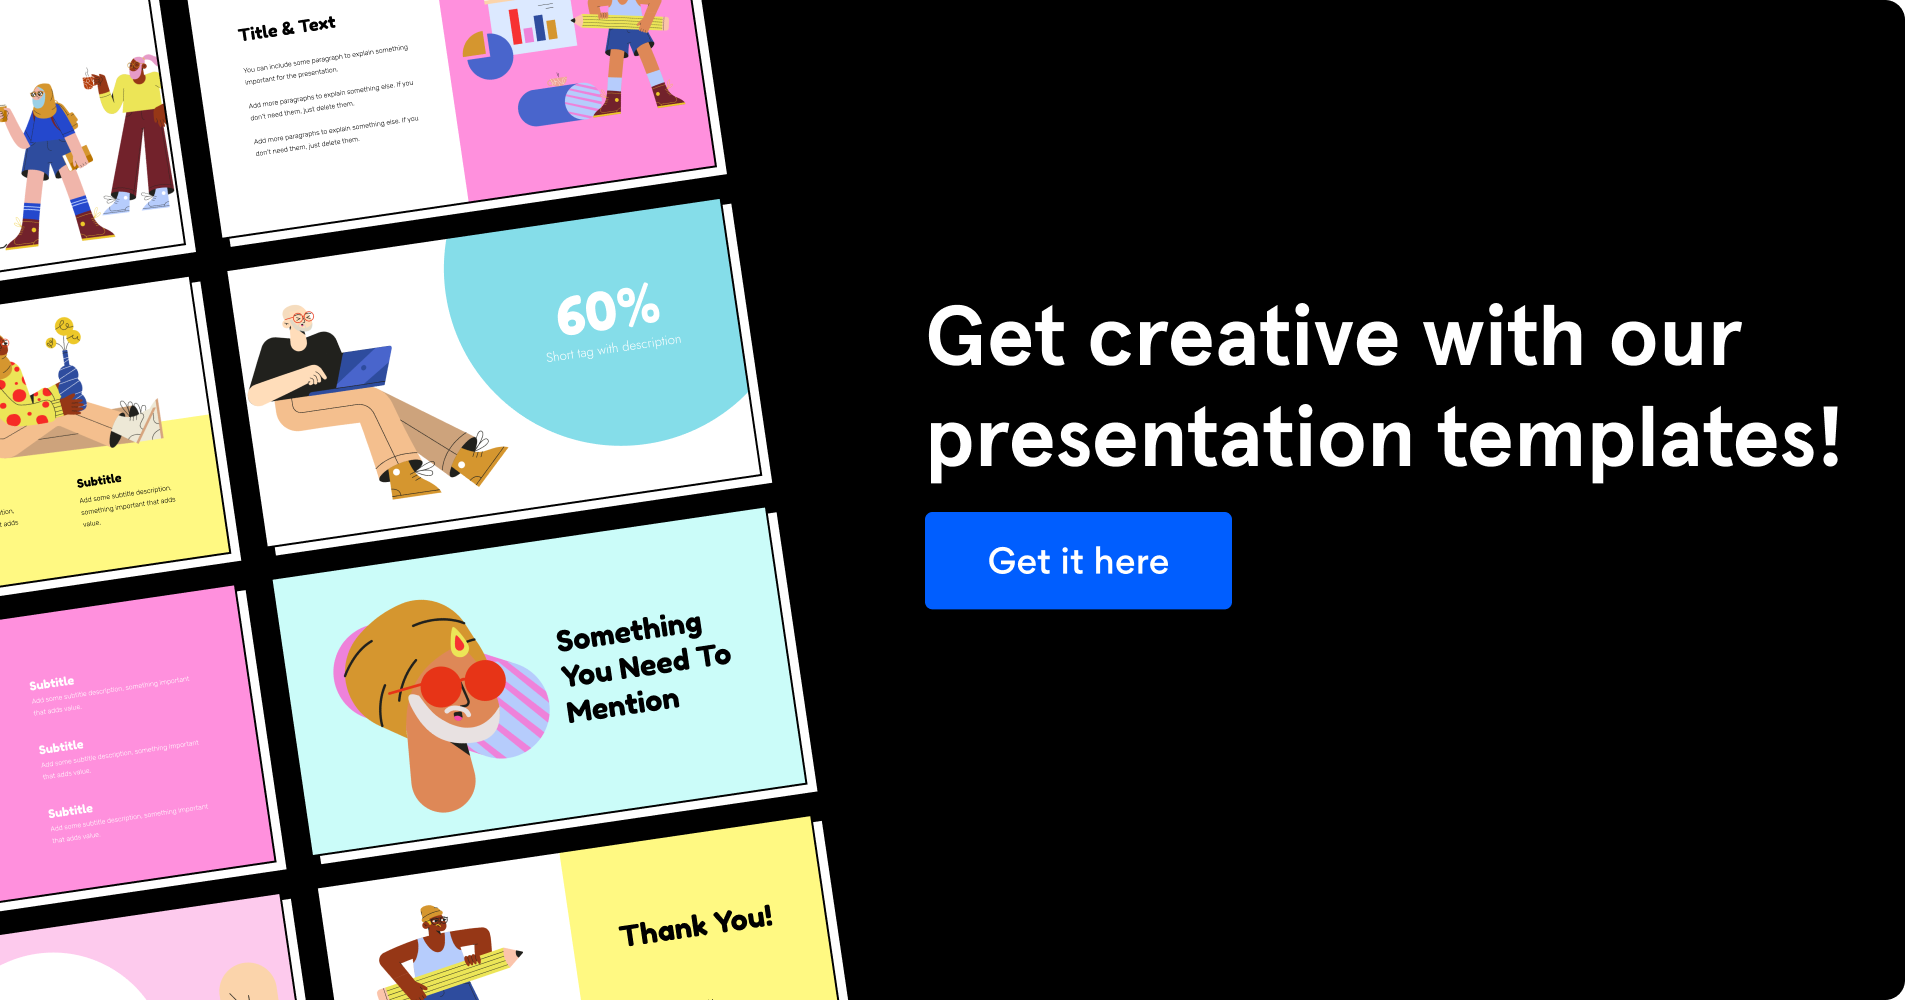 Image with button to download presentation templates.